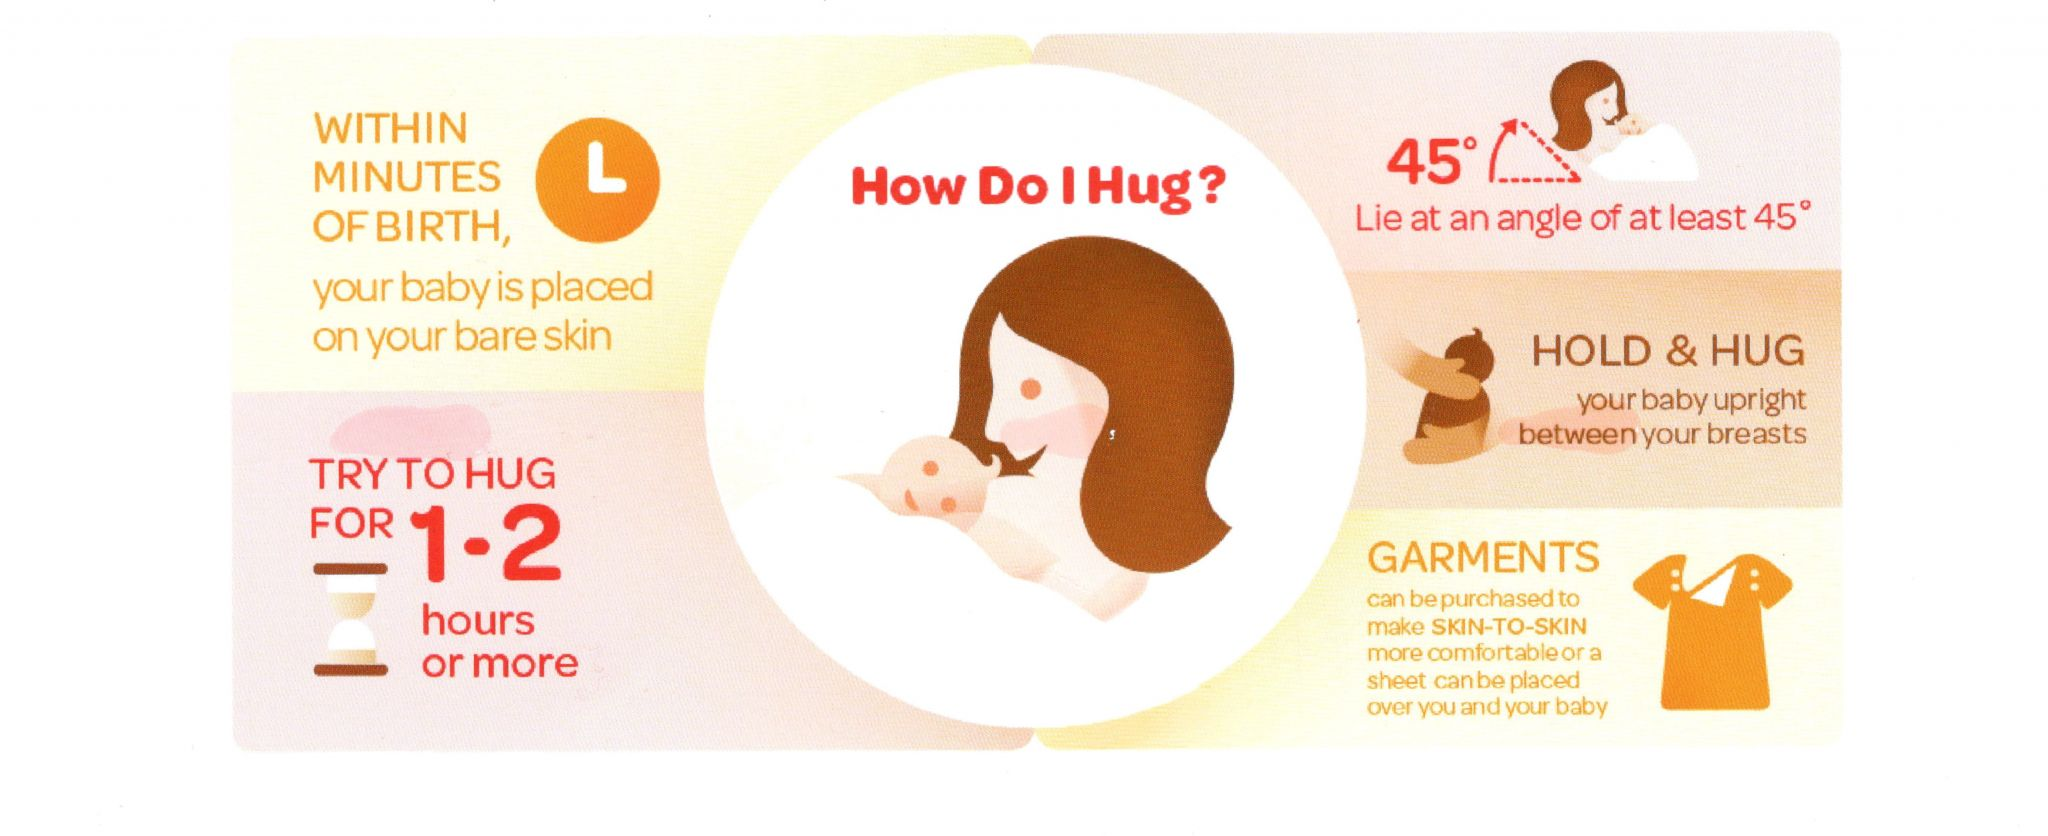 Photo of how to hug your baby in hug plan